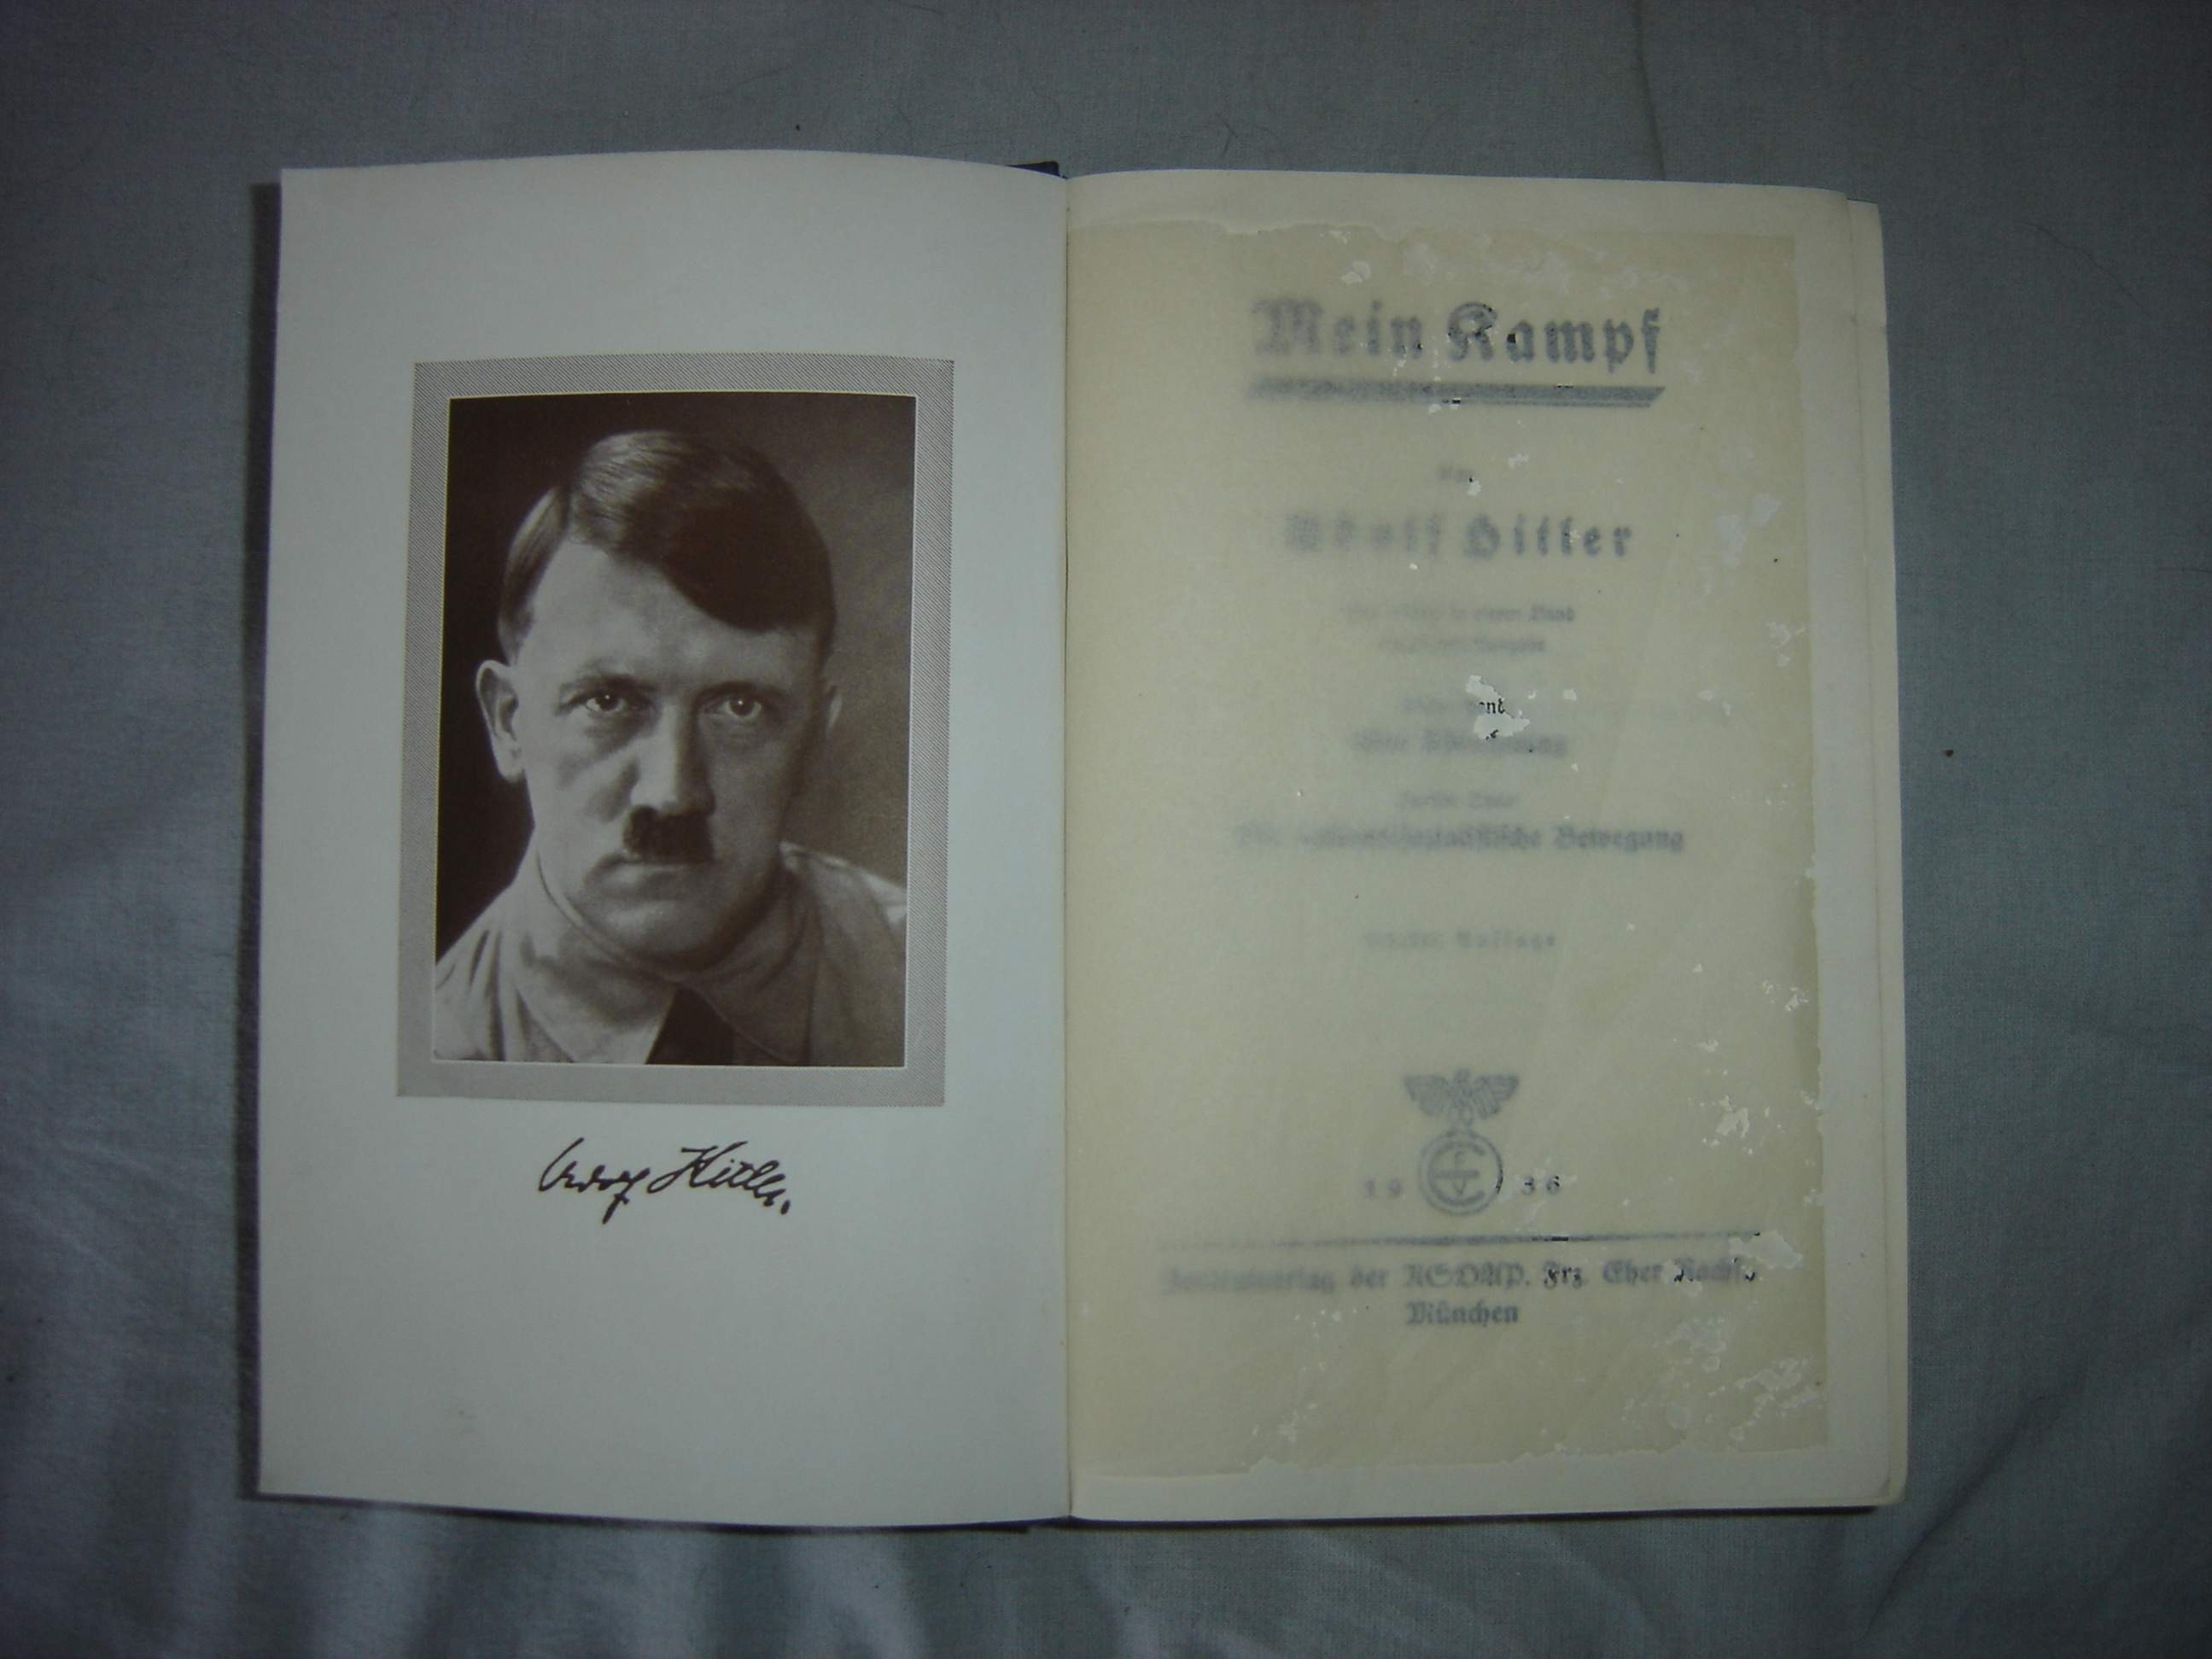 mein kampf essay Improve your reasearch with over 20 pages of premium content about mein kampf this essay will examine how propaganda was used during hitler s.